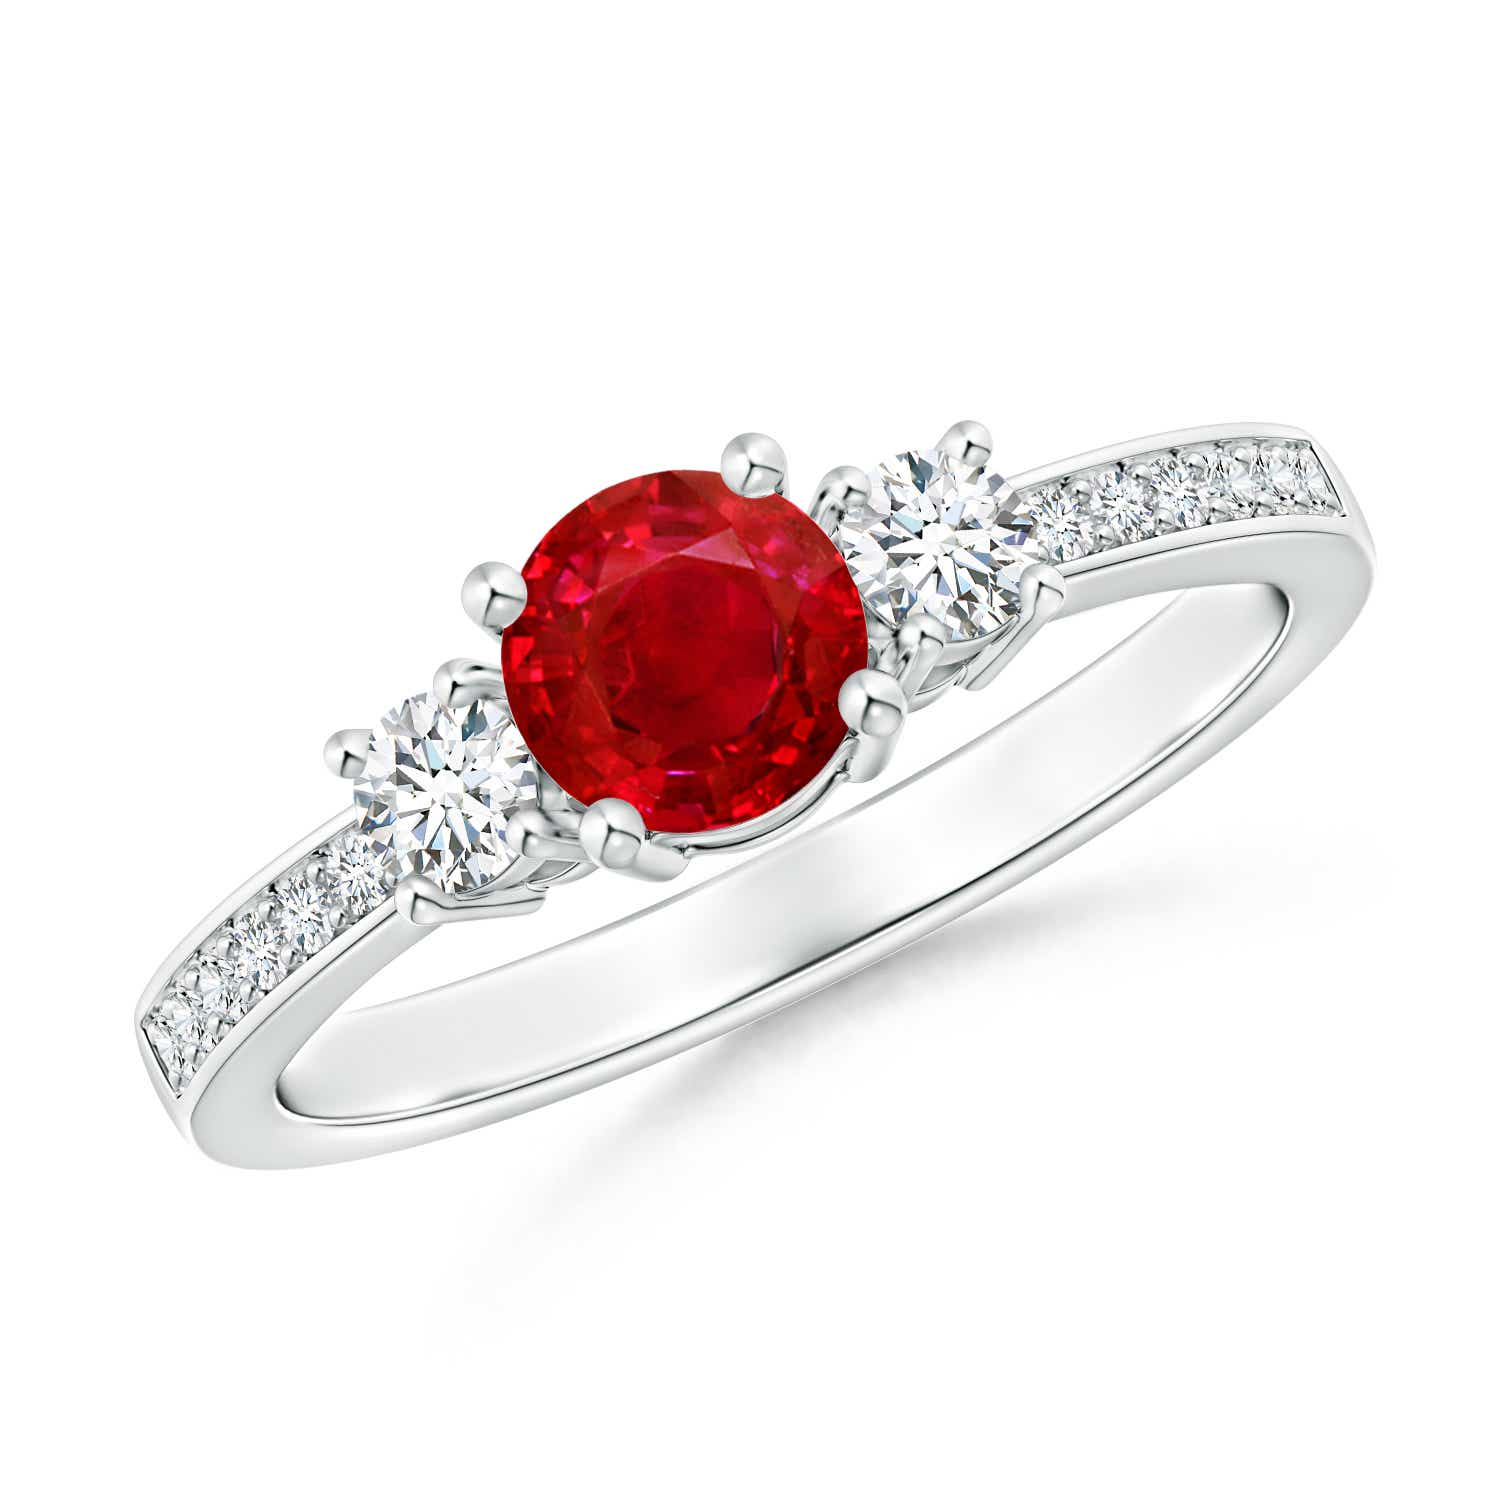 Angara Prong Set Round Ruby Ring in Platinum Pz1tu